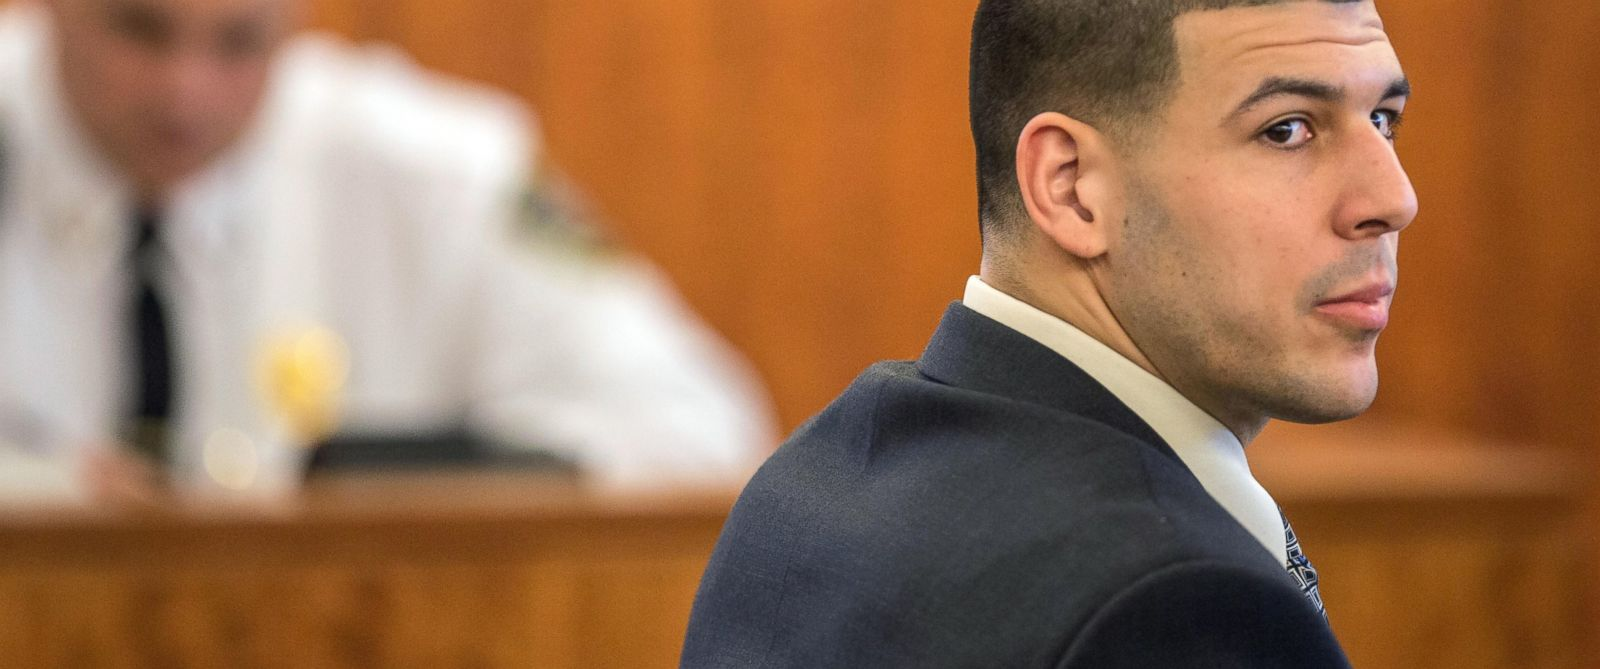 PHOTO: Former New England Patriots football player Aaron Hernandez looks towards the jury during his murder trial at Bristol County Superior Court in Fall River, Mass., Feb. 25, 2015.